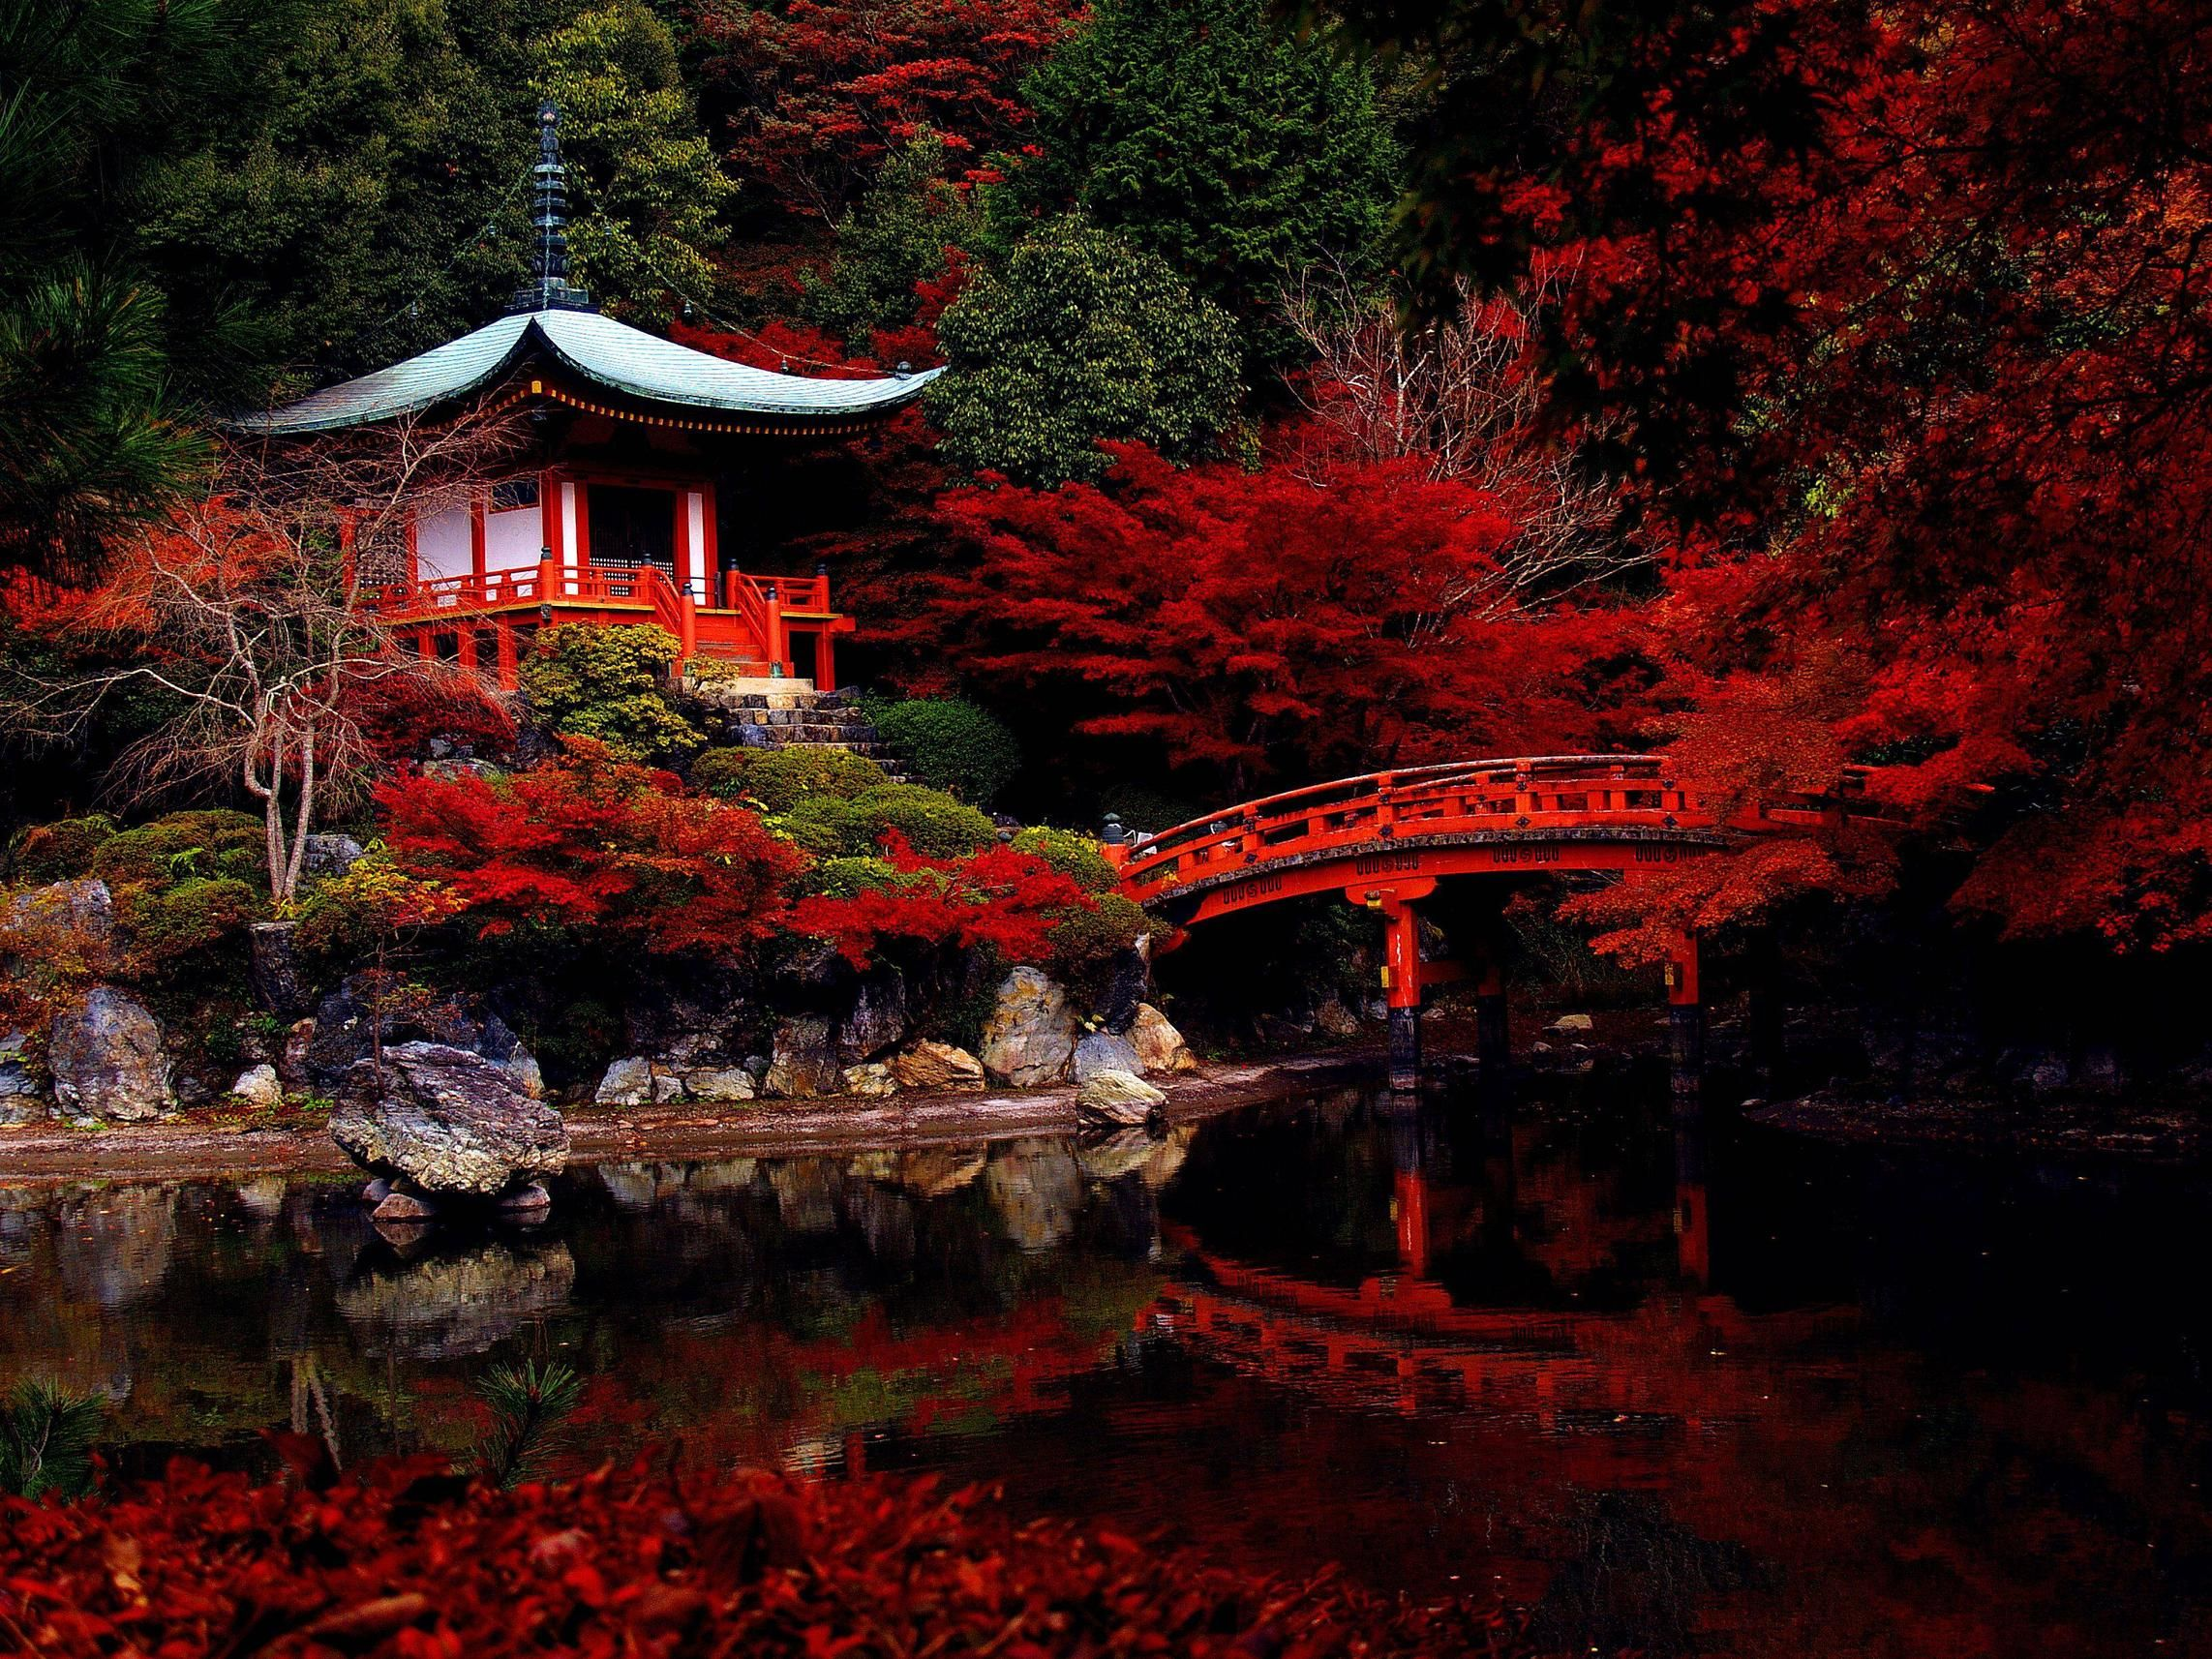 Japanese Garden At Night Ideas Amazing 39242 Inspiration Designs